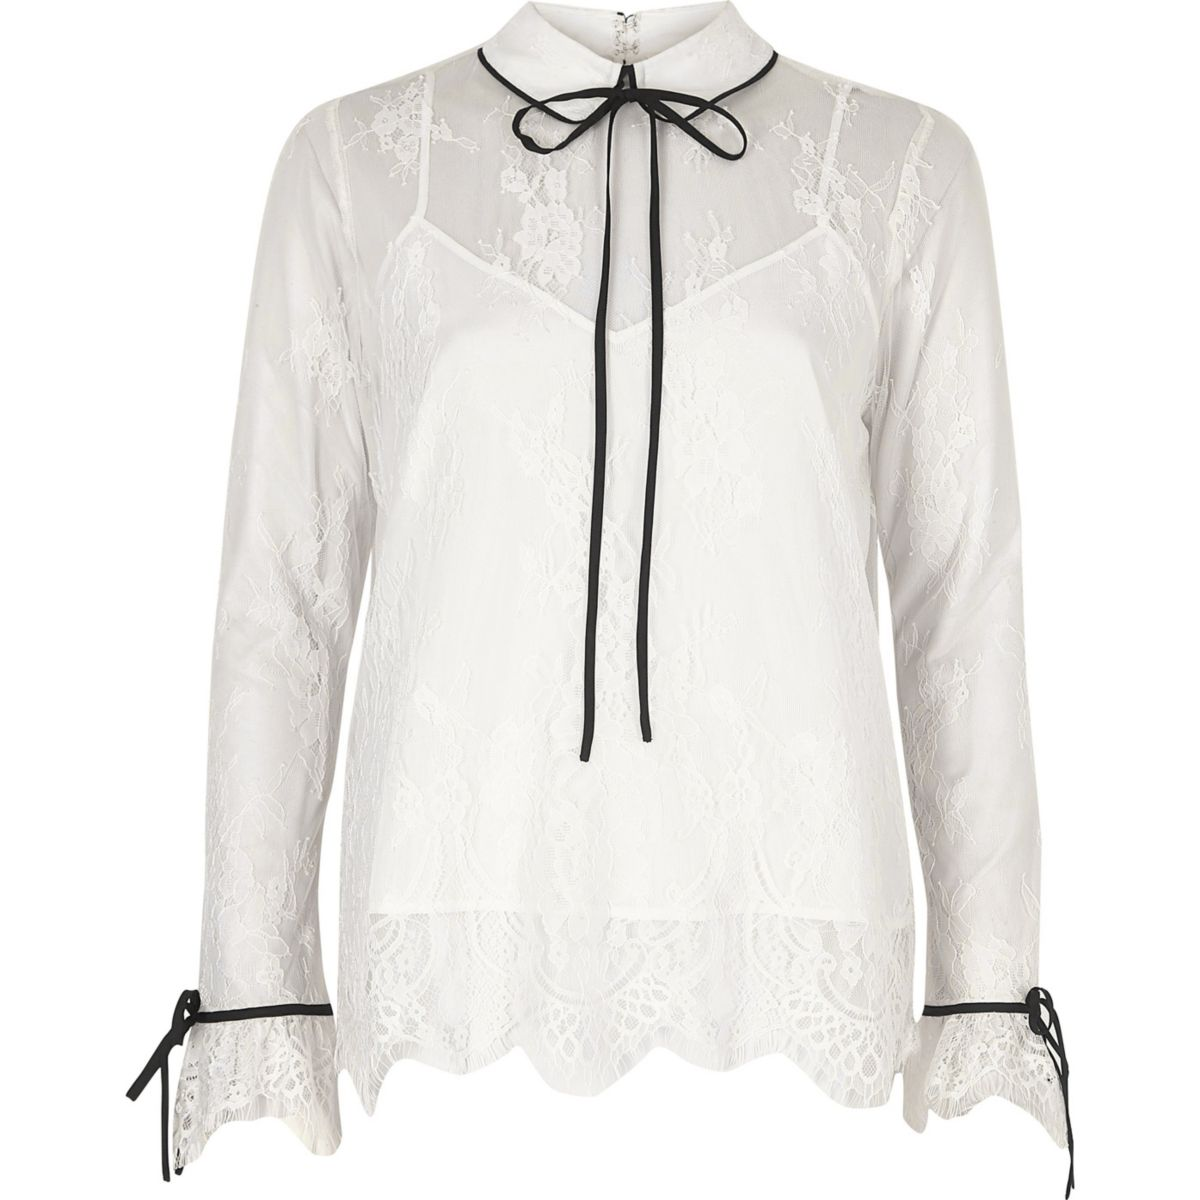 White lace frill tie neck blouse